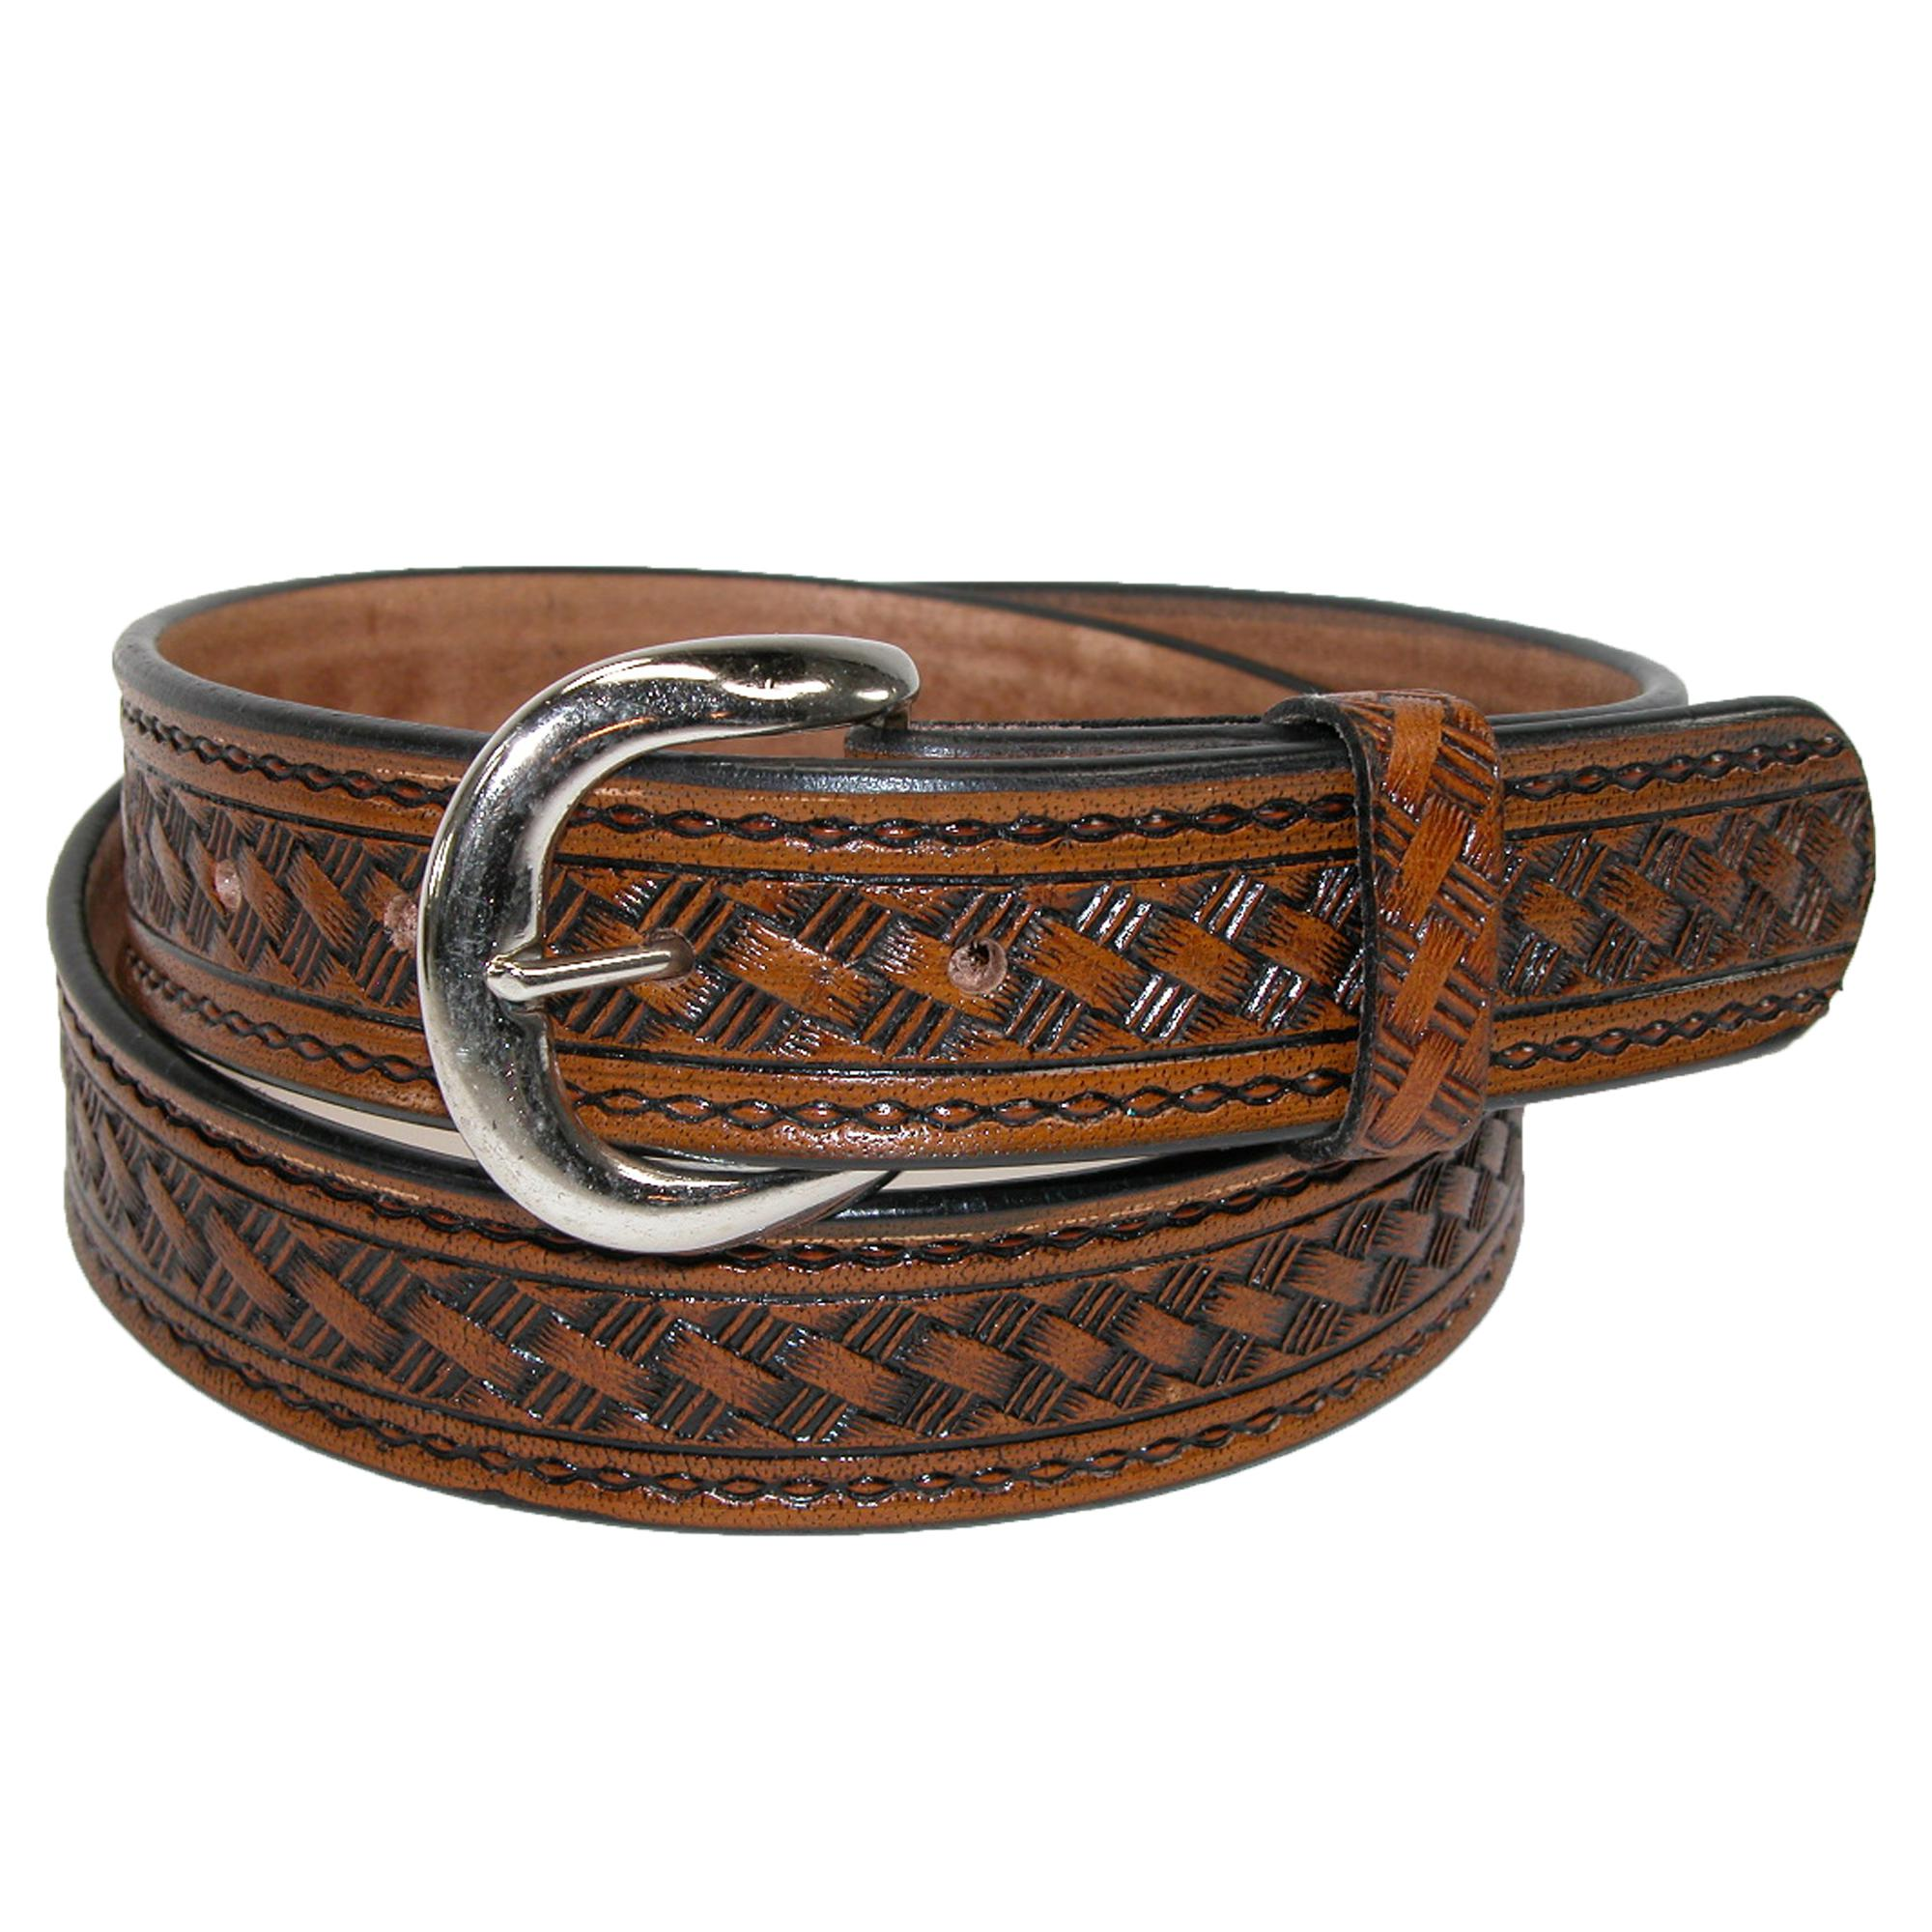 CTM_Mens_Leather_1_38_Inch_Western_Belt_with_Removable_Buckle_